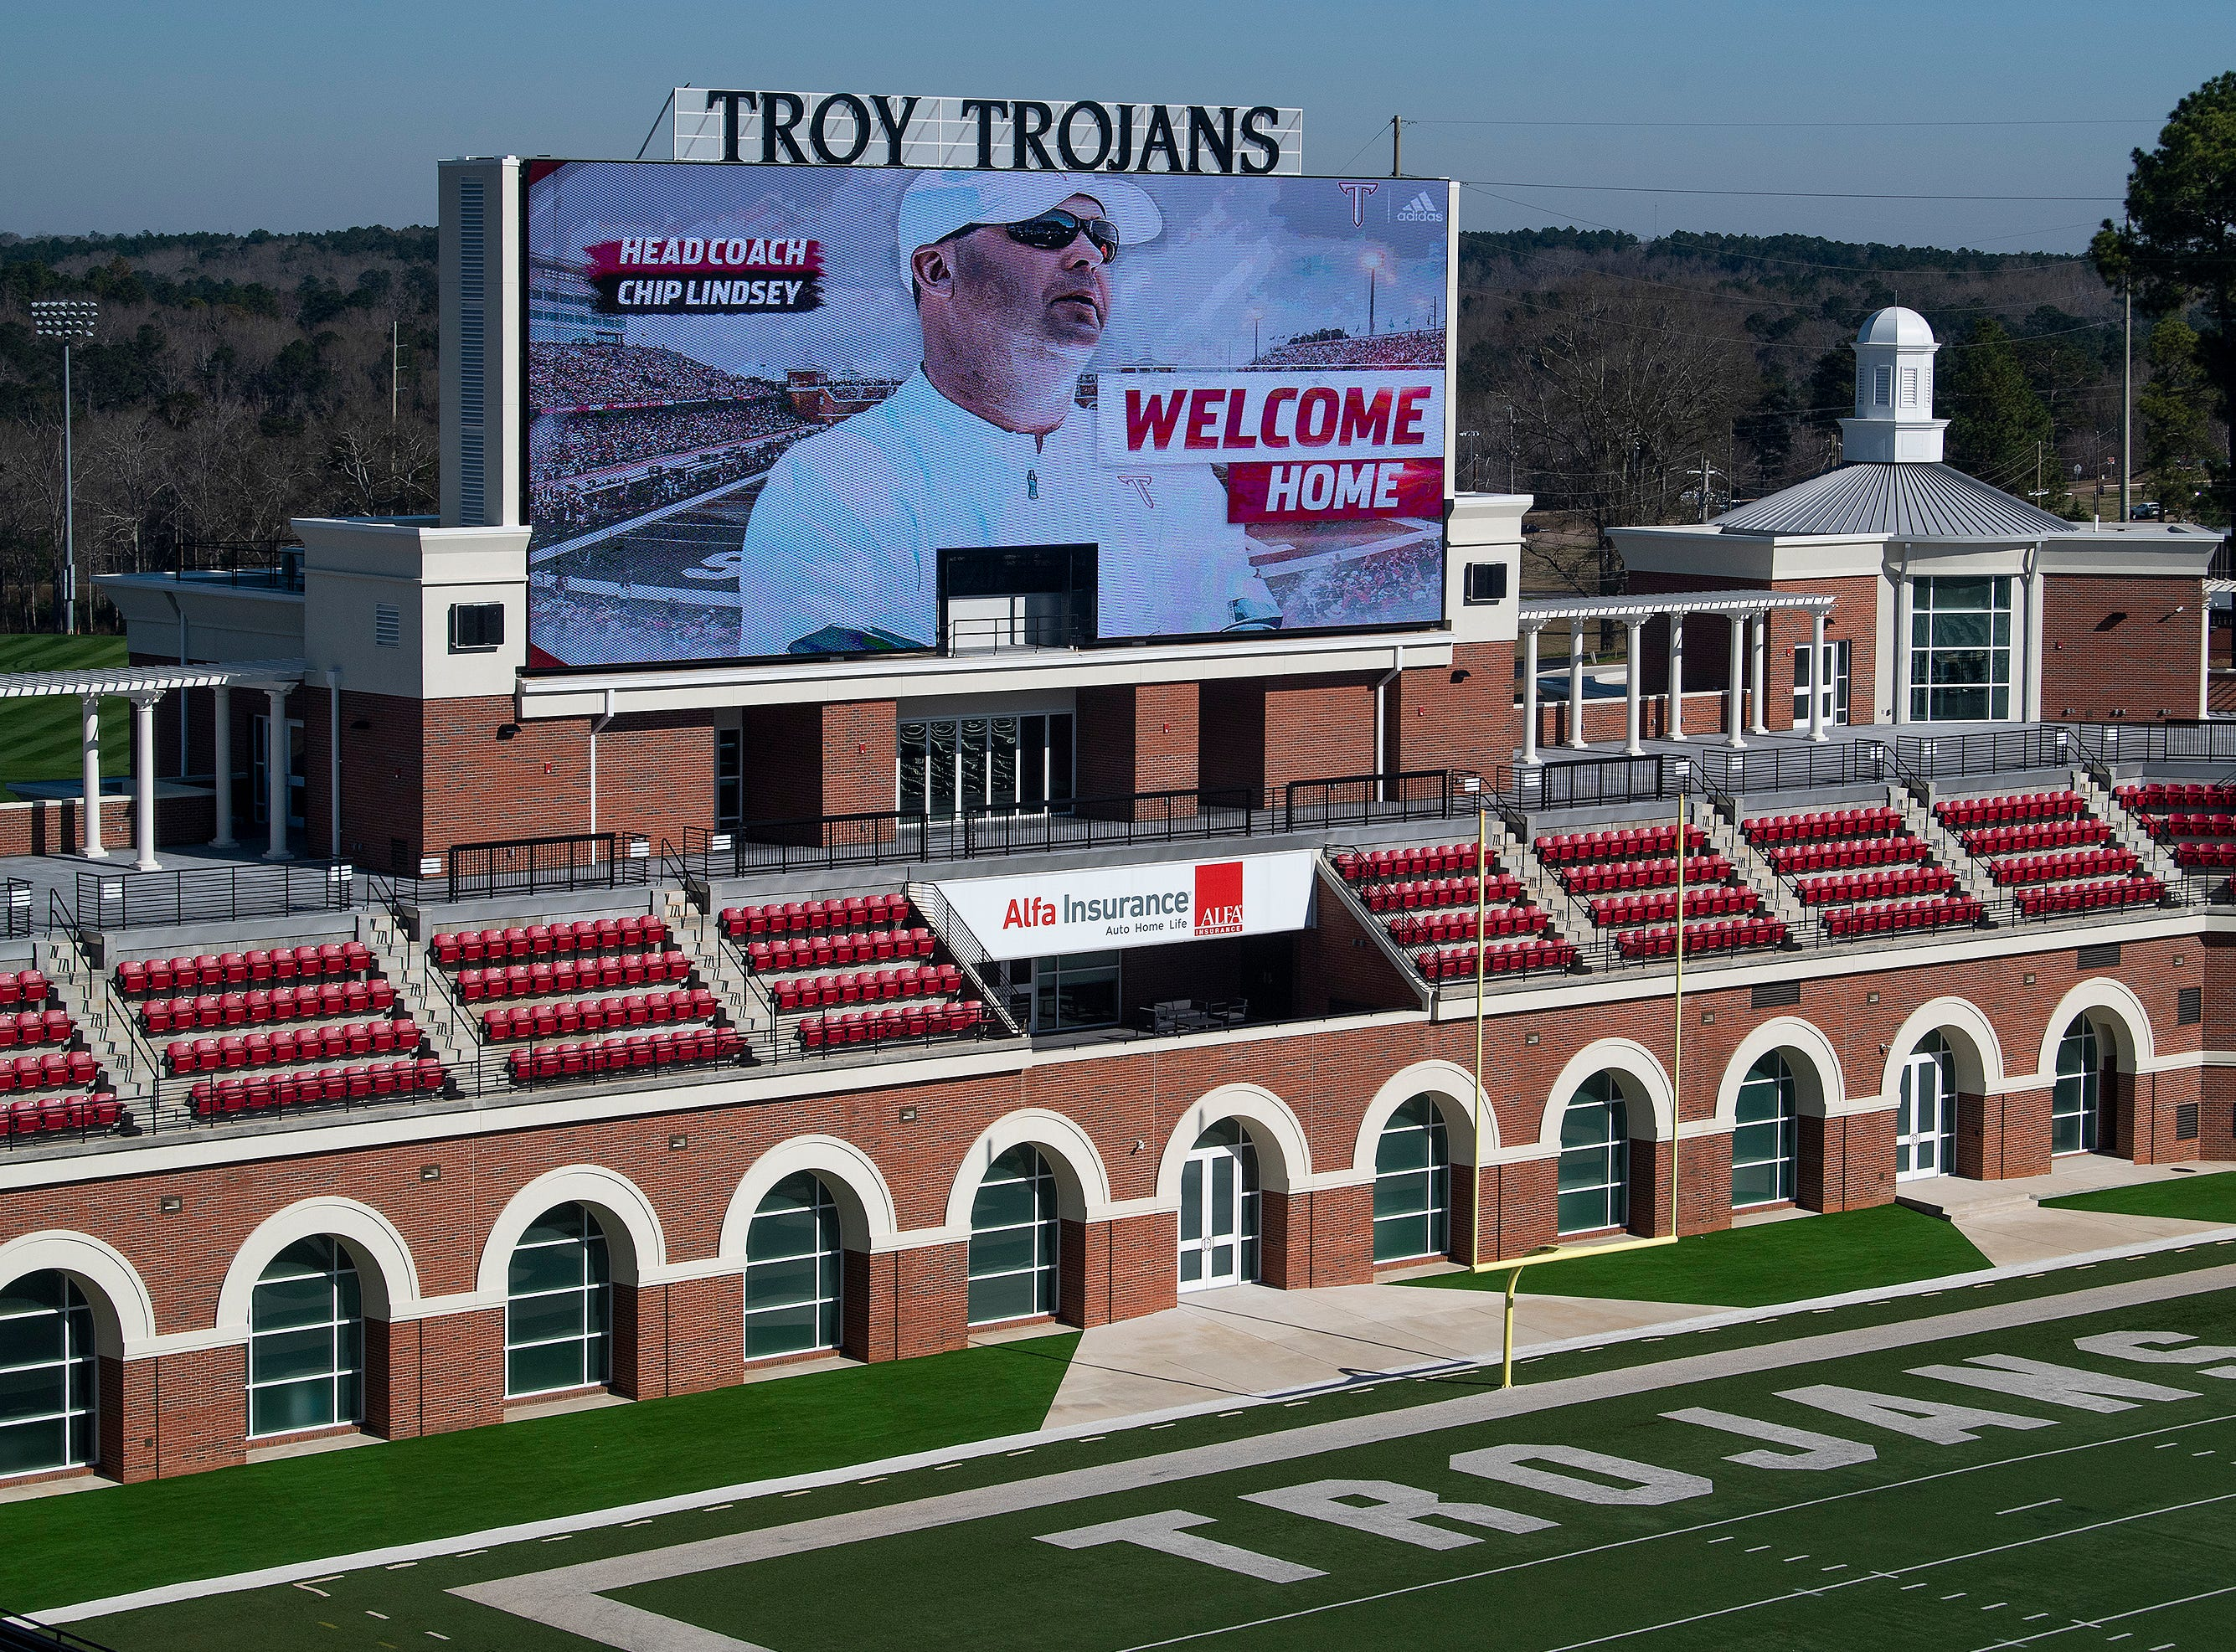 New Troy University Head Football Coach Chip Lindsey is shown on the big screen at the football stadium on the Troy campus in Troy, Ala., on Friday January 11, 2019.